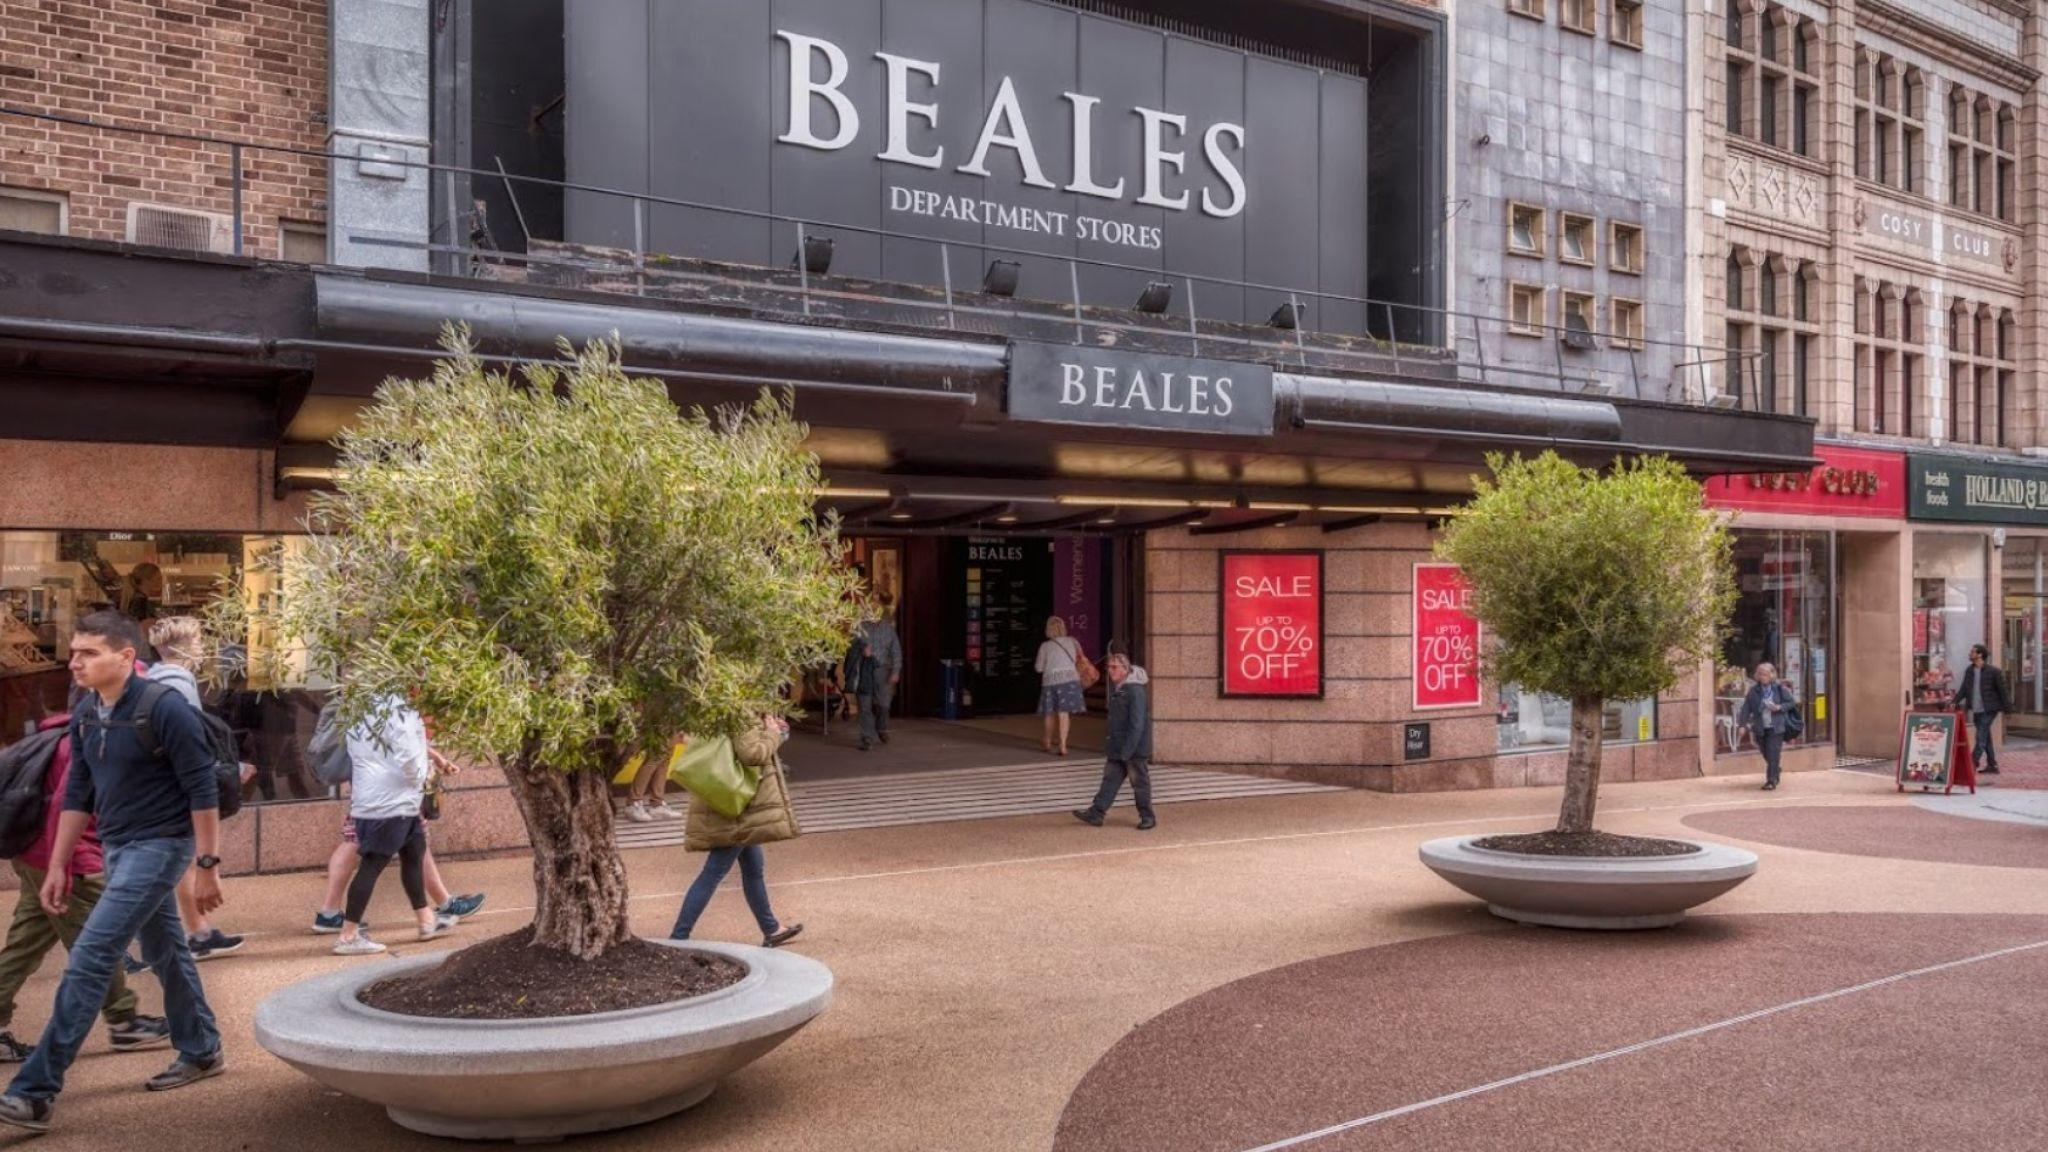 Department store Beales on brink of collapse, risking 1,300 jobs